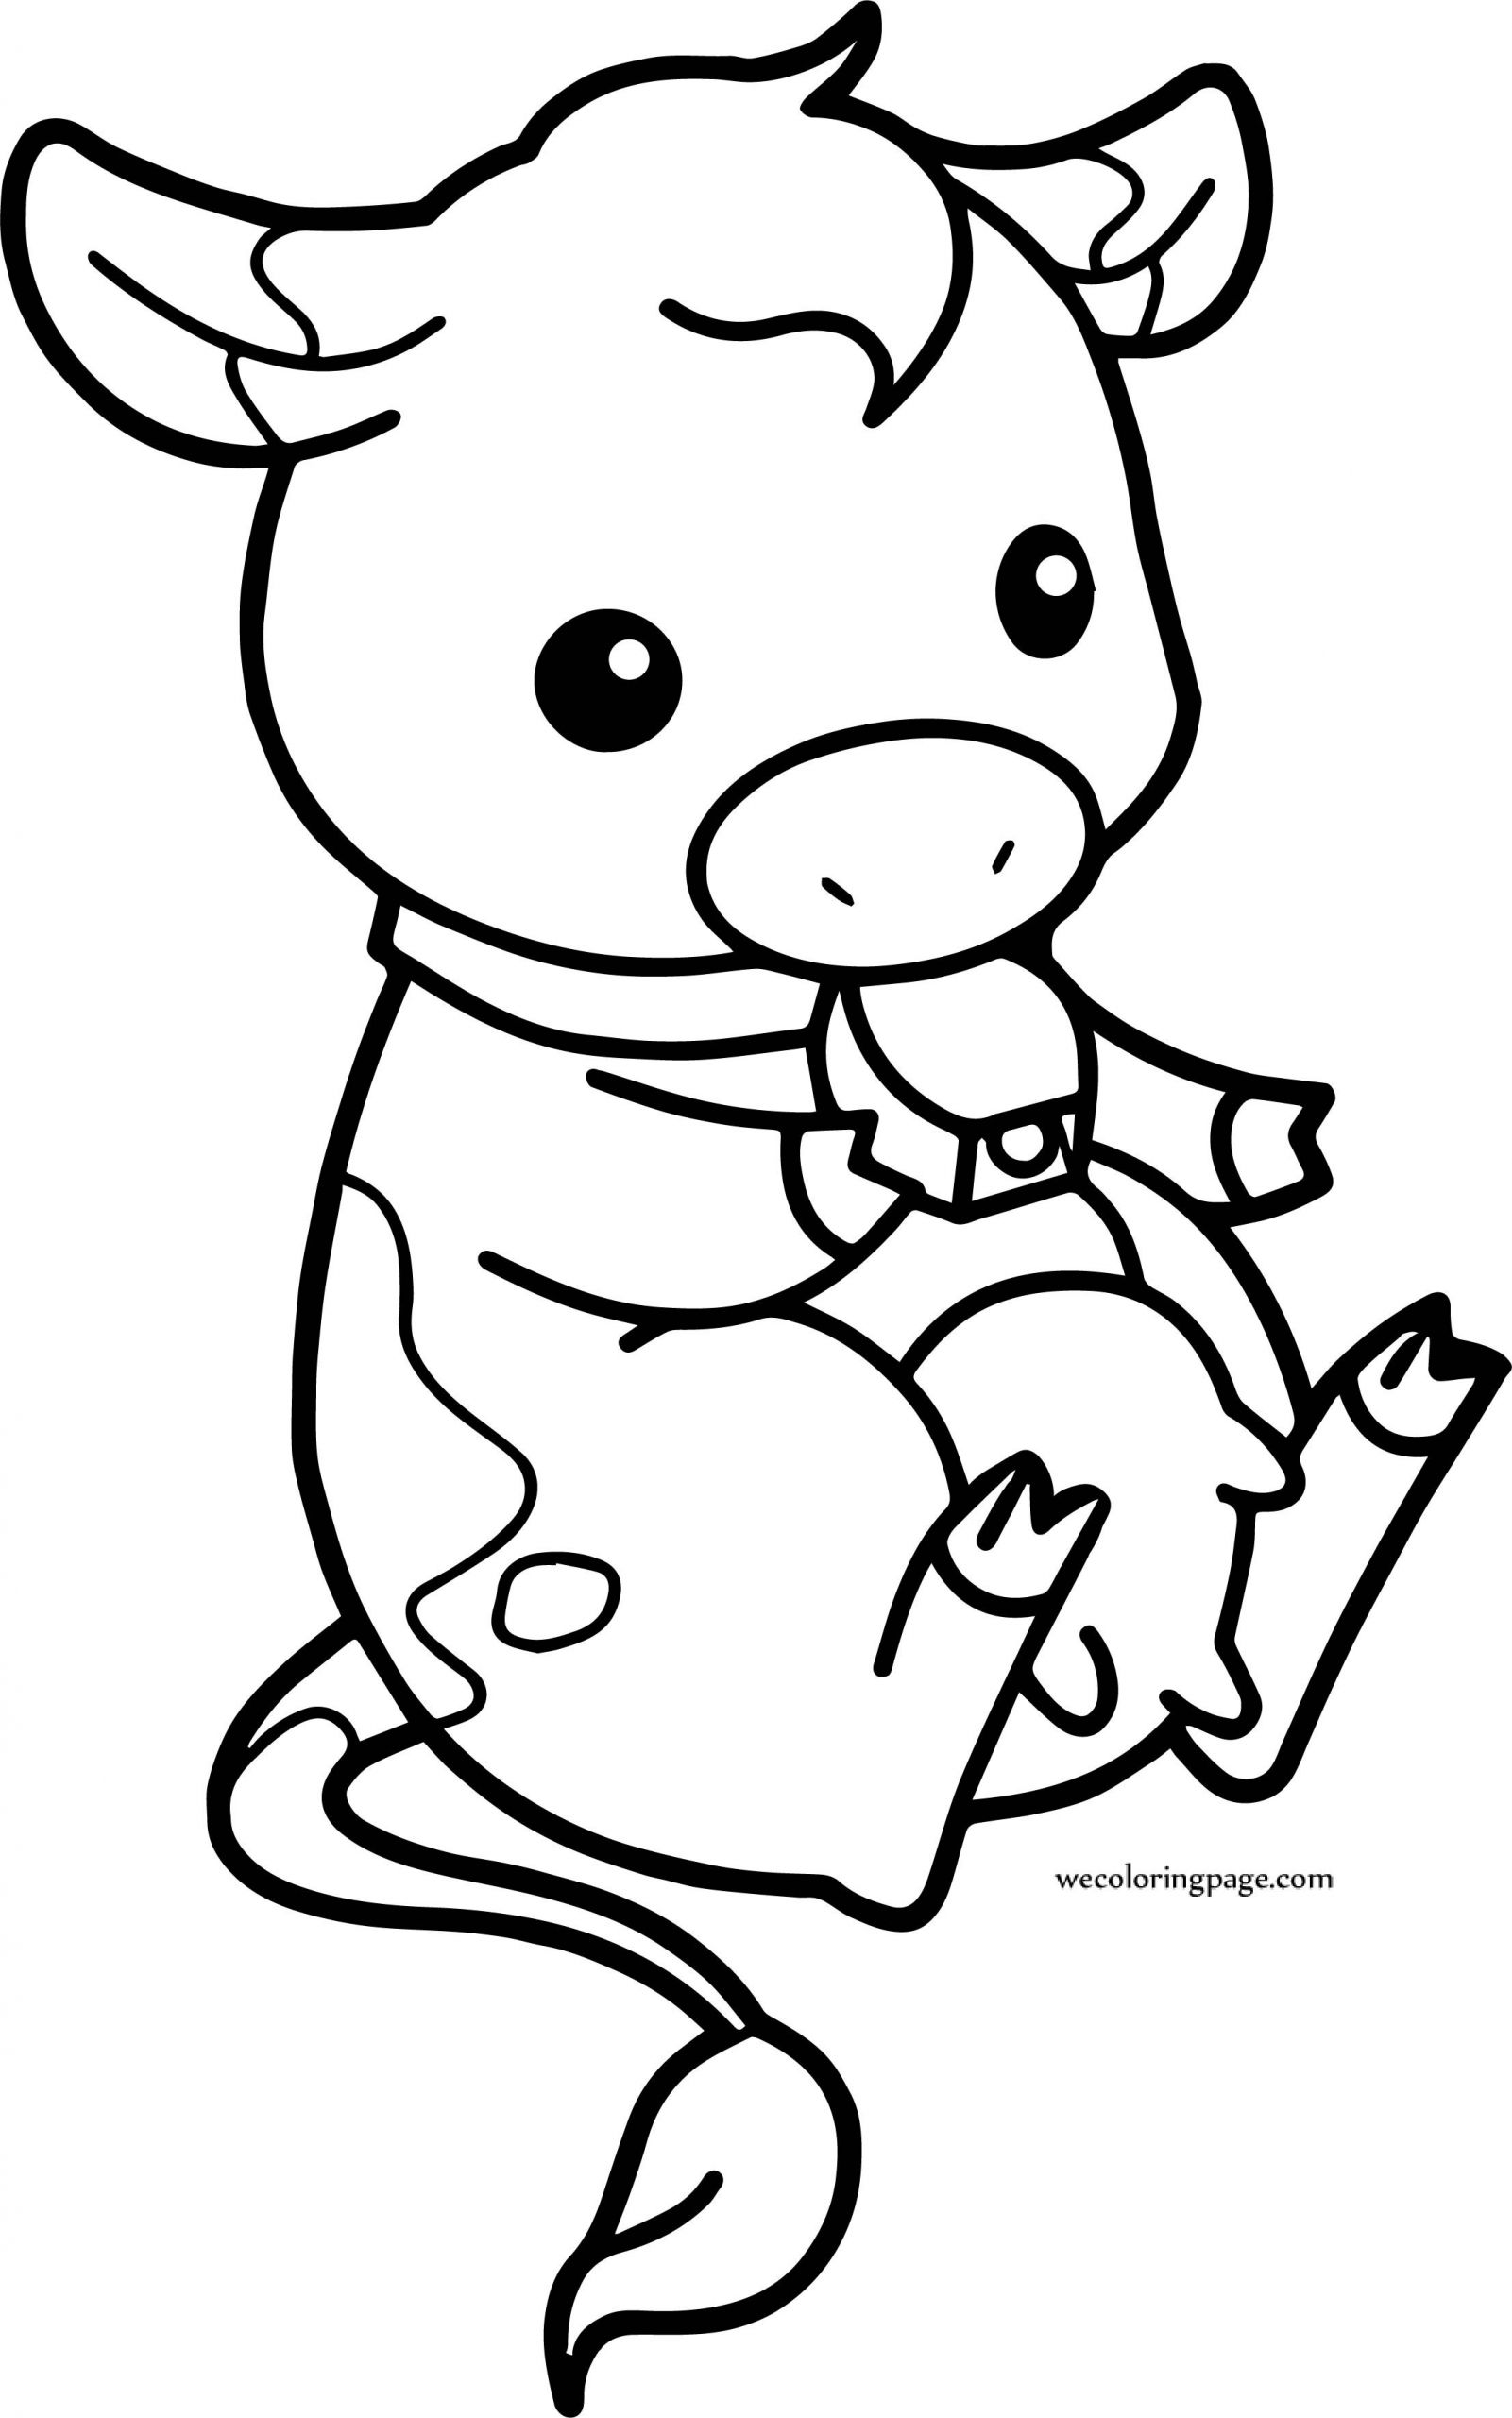 Baby Cow Coloring Pages  Baby Cow Chibi Farm Cow Coloring Page